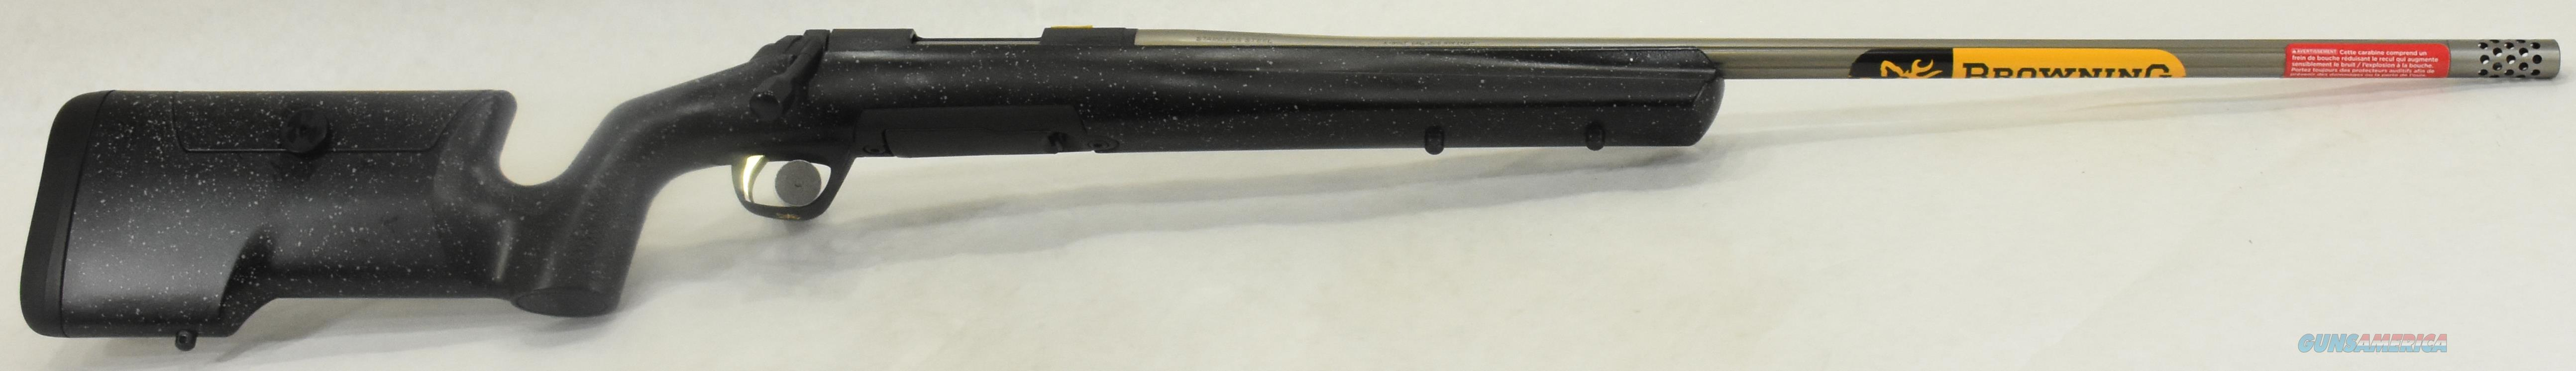 Xbolt MAX Long Range 308Win 26In  035438218  Guns > Rifles > Browning Rifles > Bolt Action > Hunting > Stainless